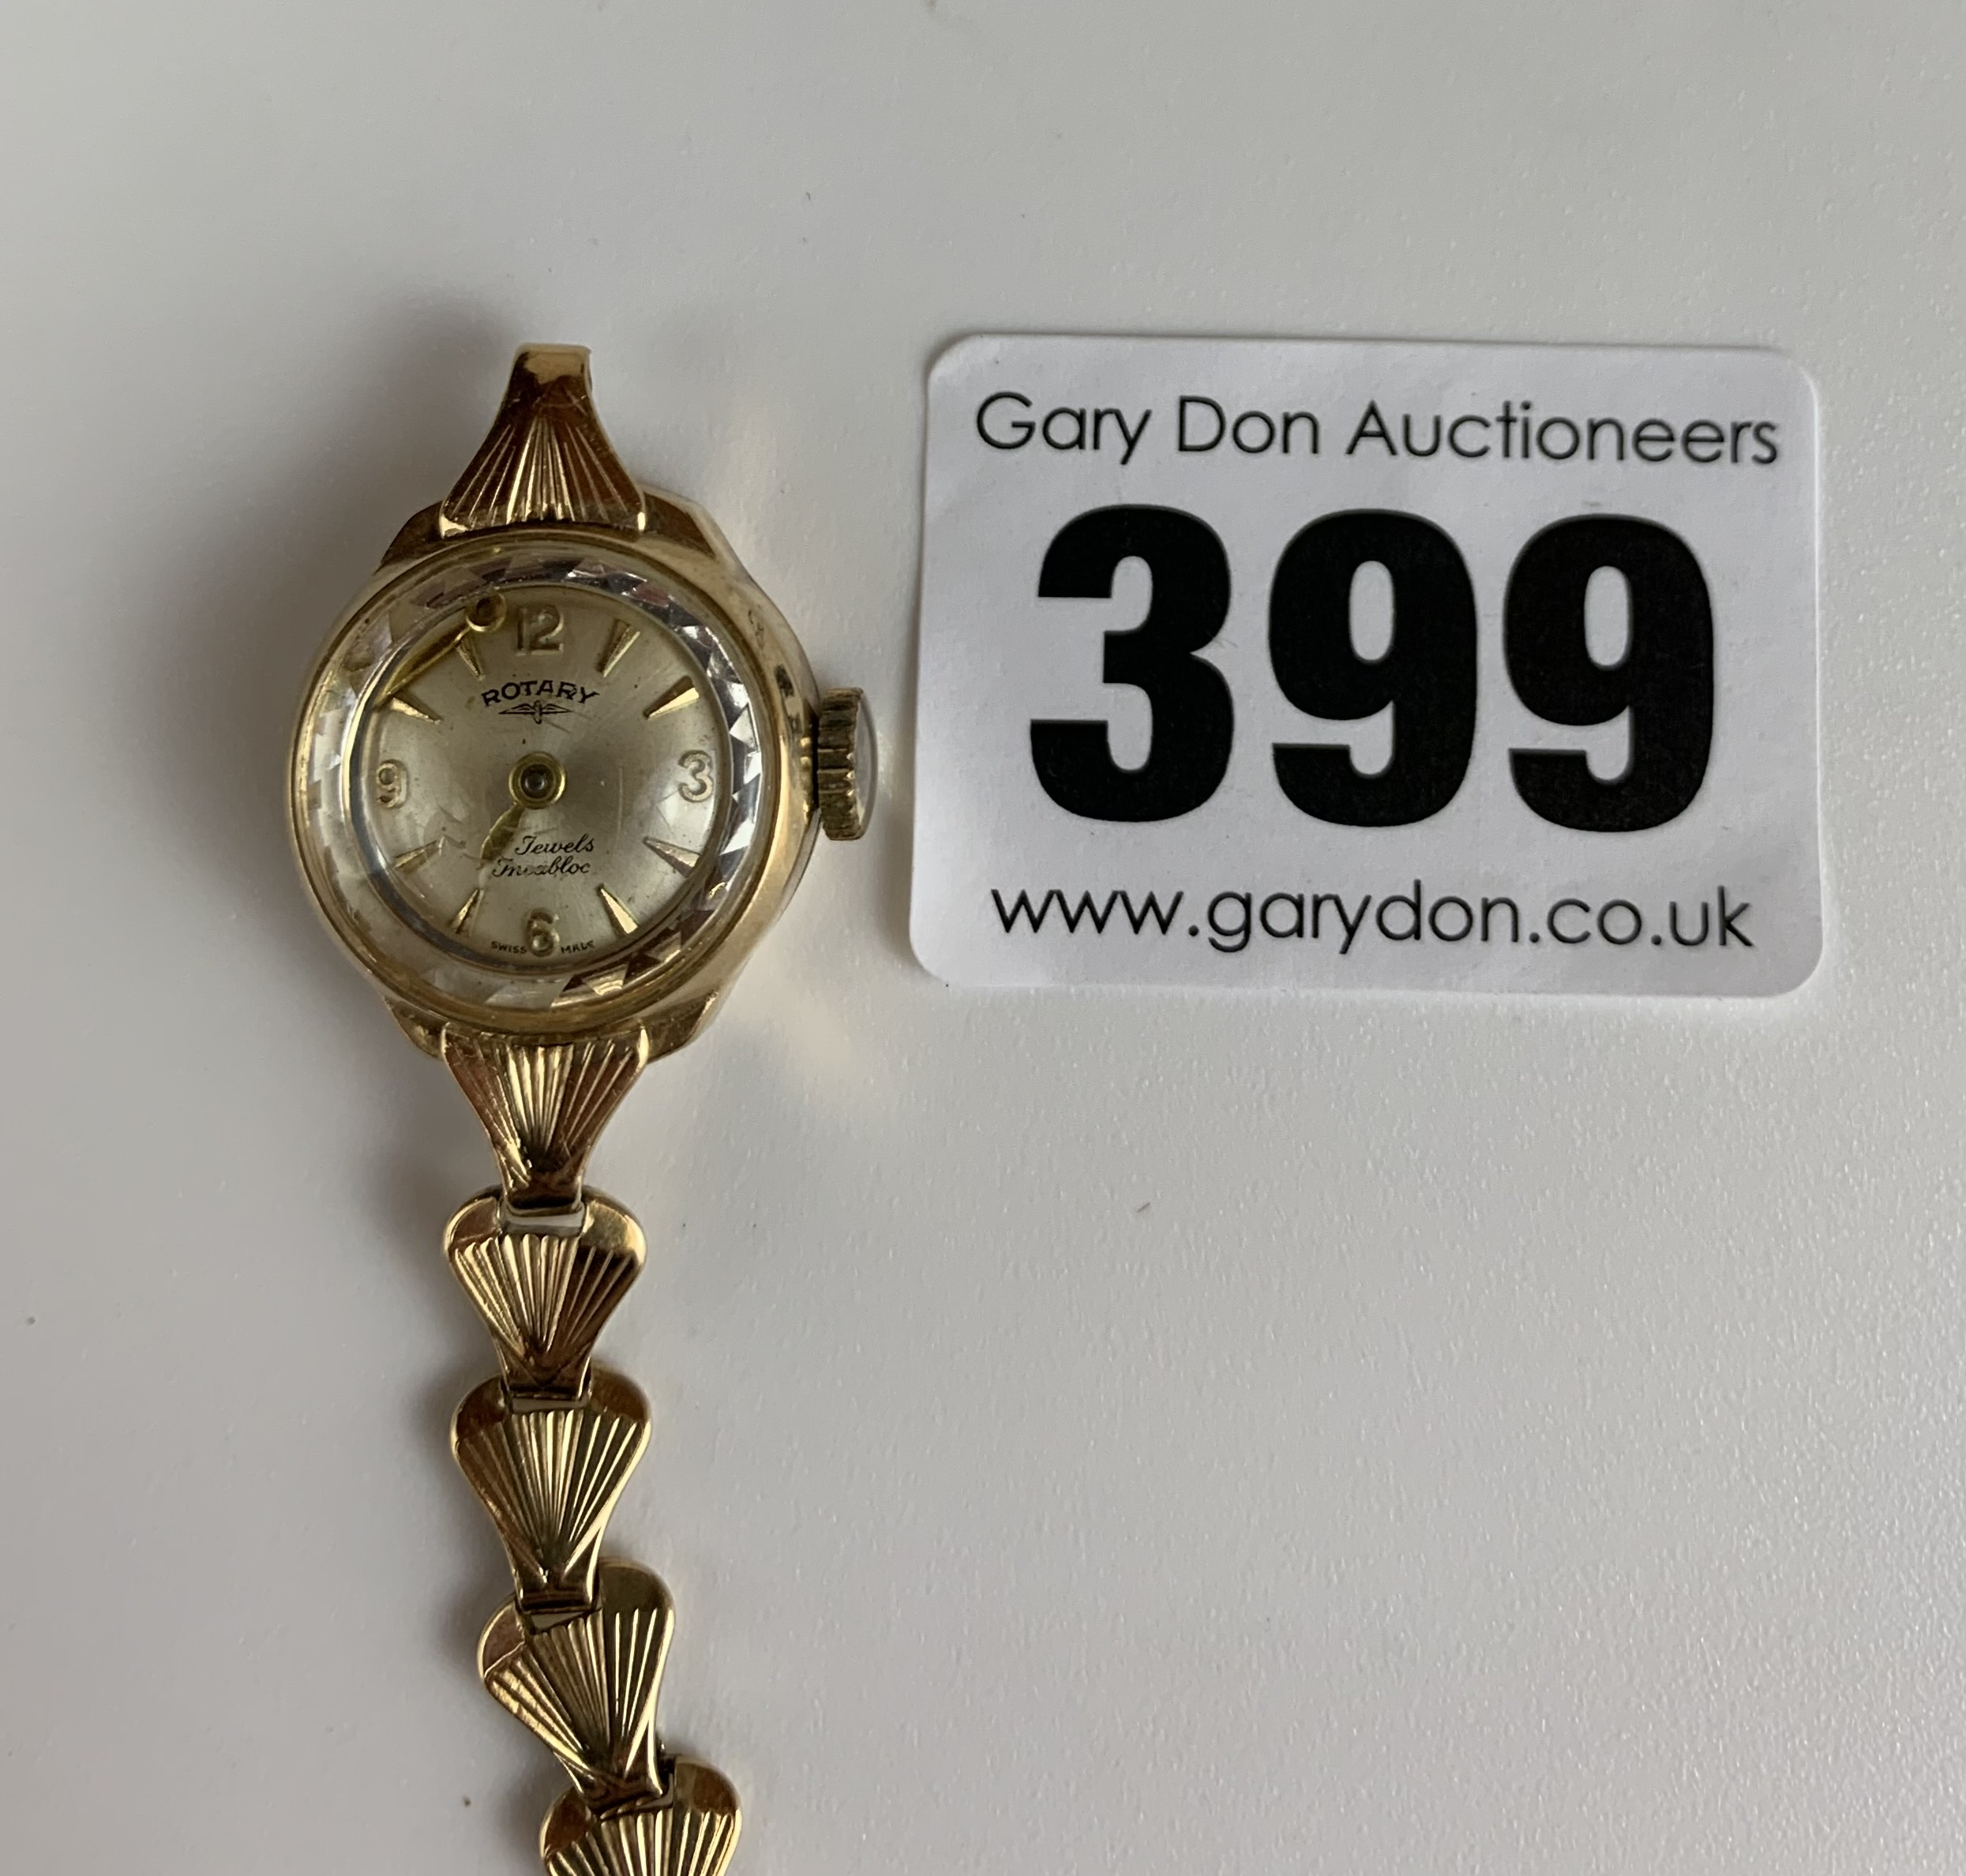 9k gold ladies Rotary watch with 9k gold bracelet (broken), total w: 12.6 gms. Minute hand detached - Image 2 of 3